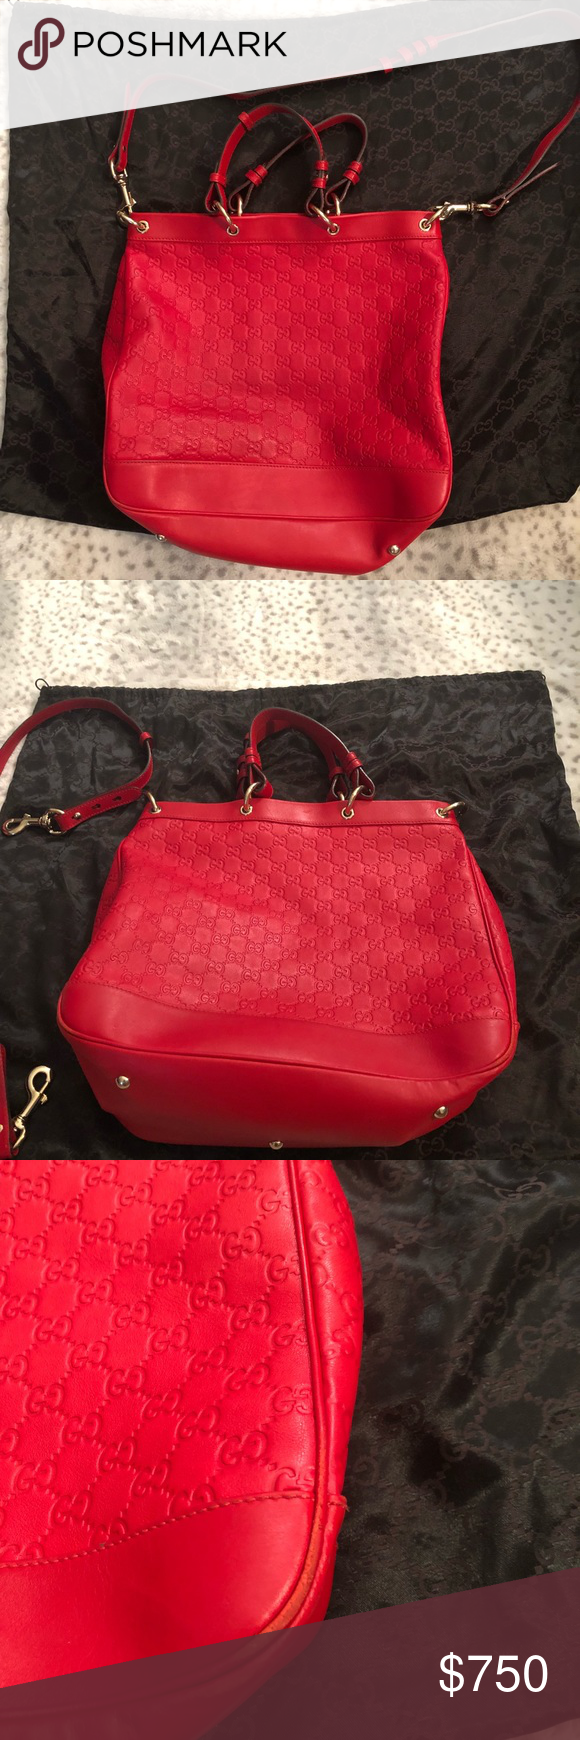 gucci valentine satchel red guccissima leather with gold hardware and  shoulder strap with gucci shoulder bags c 30 d742fa39f212b